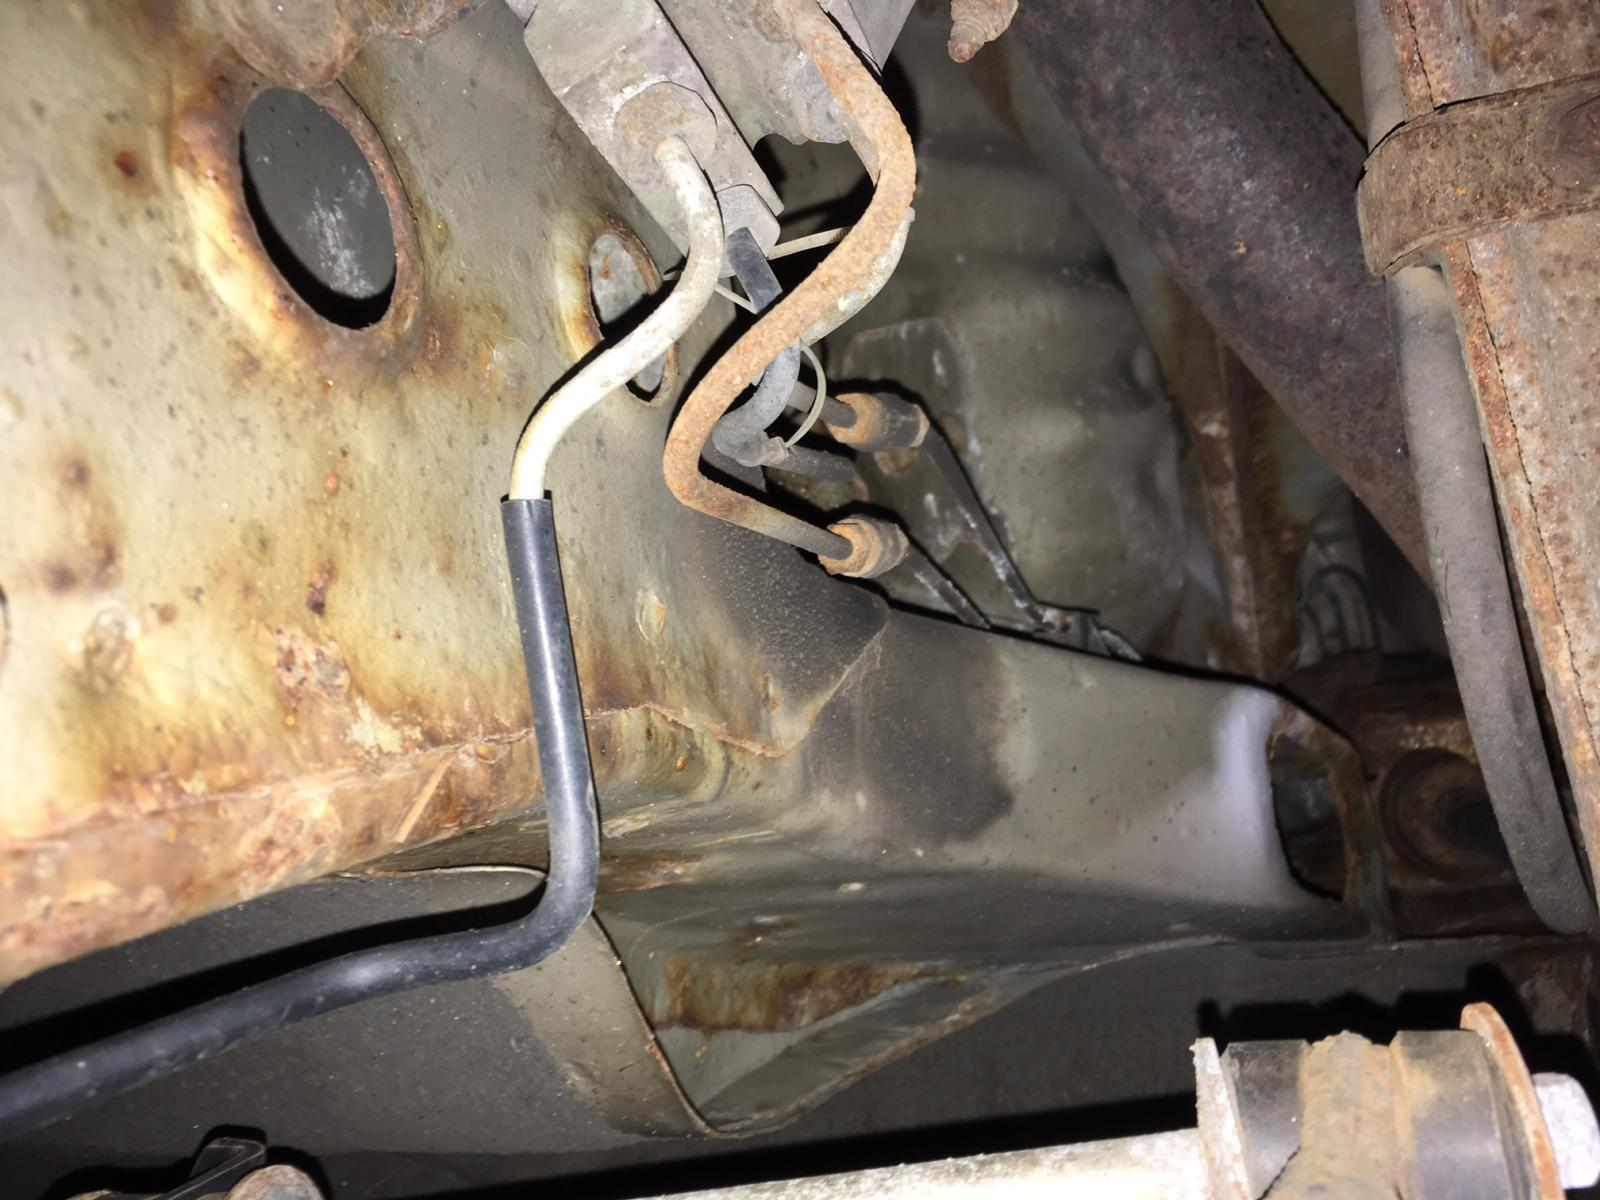 D Replacing Front Rear Brake Lines Img on 2000 Buick Lesabre Rear Suspension Diagram